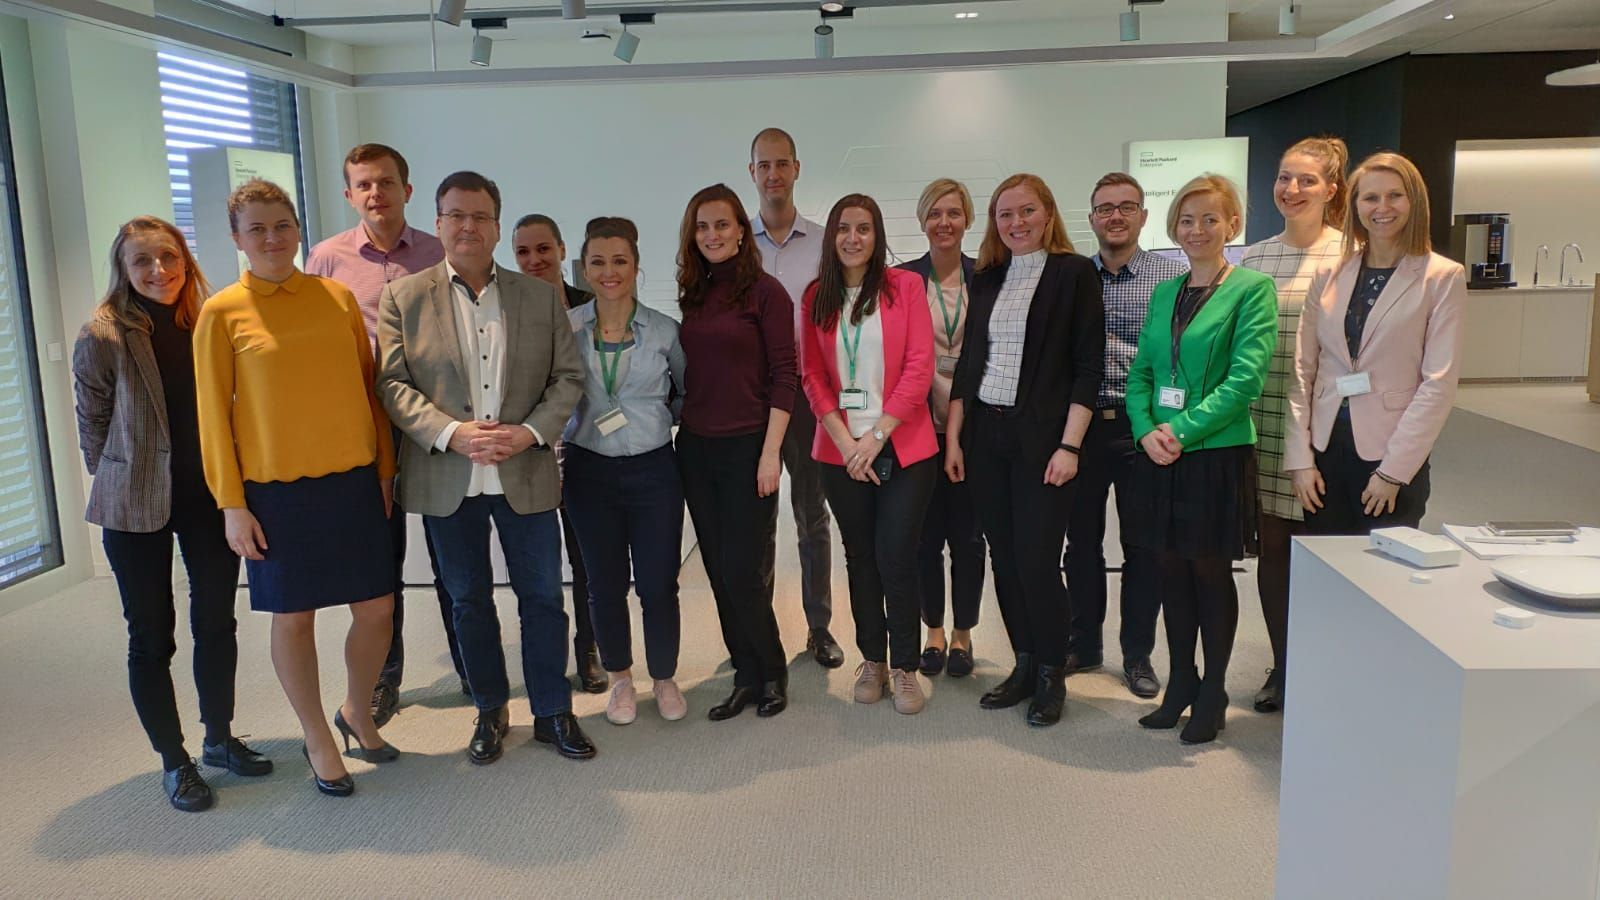 Dr. Tom hosted Finance Talent at the IoT Lab in Geneva